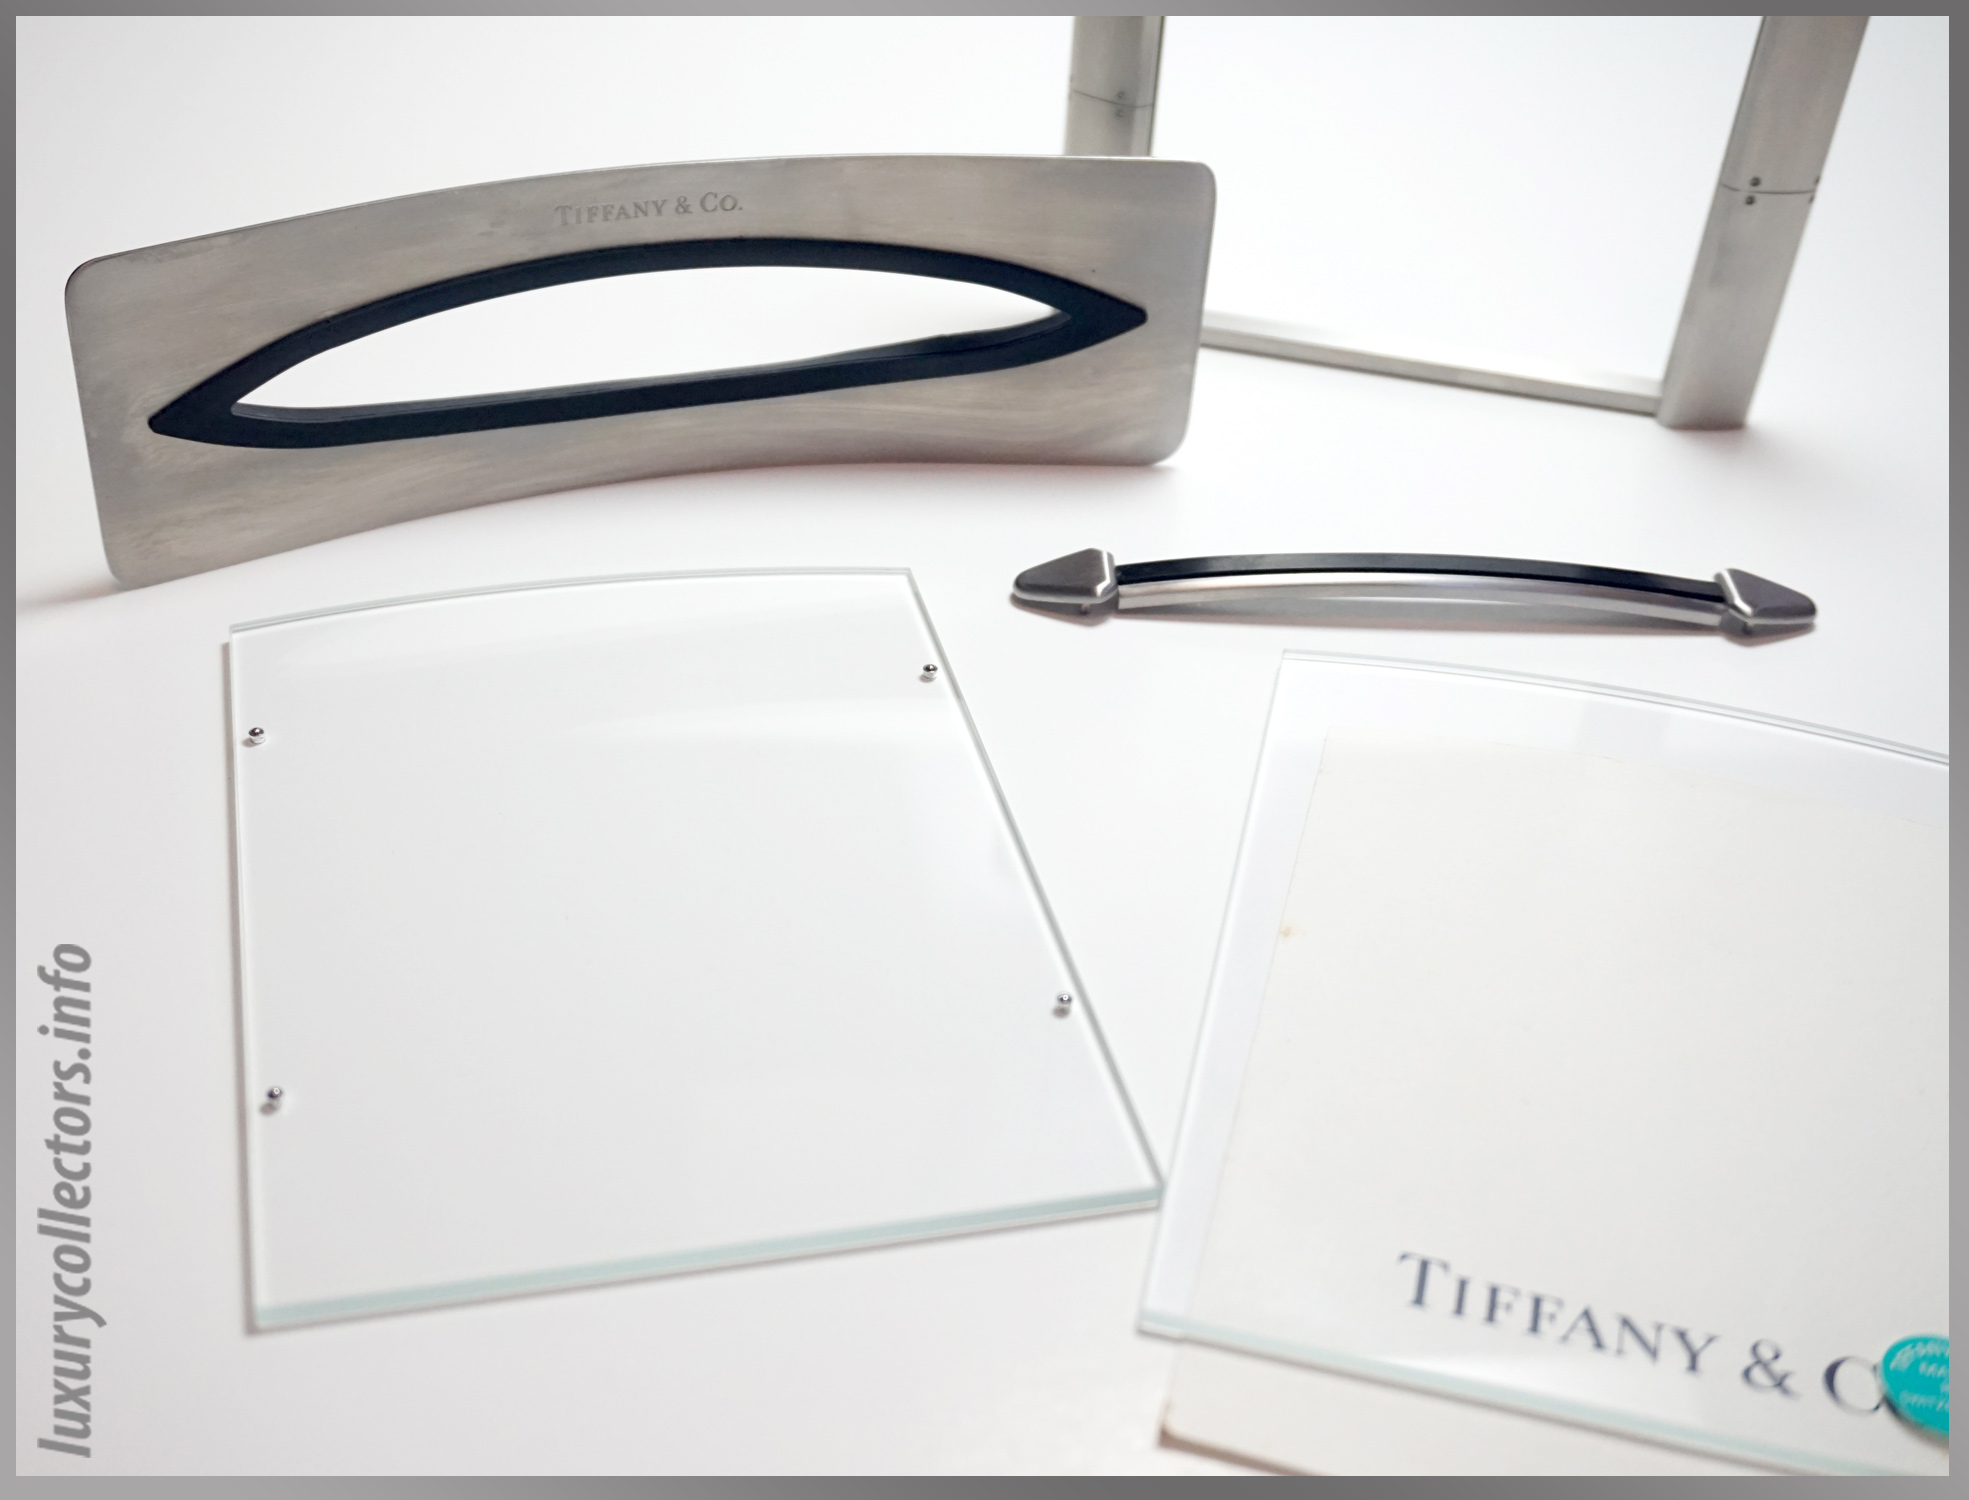 Tiffany & and Co. Streamerica Stainless Steel Airframe Picture Photo Frame Large Swiss Made in Switzerland Detailed logo glass panels